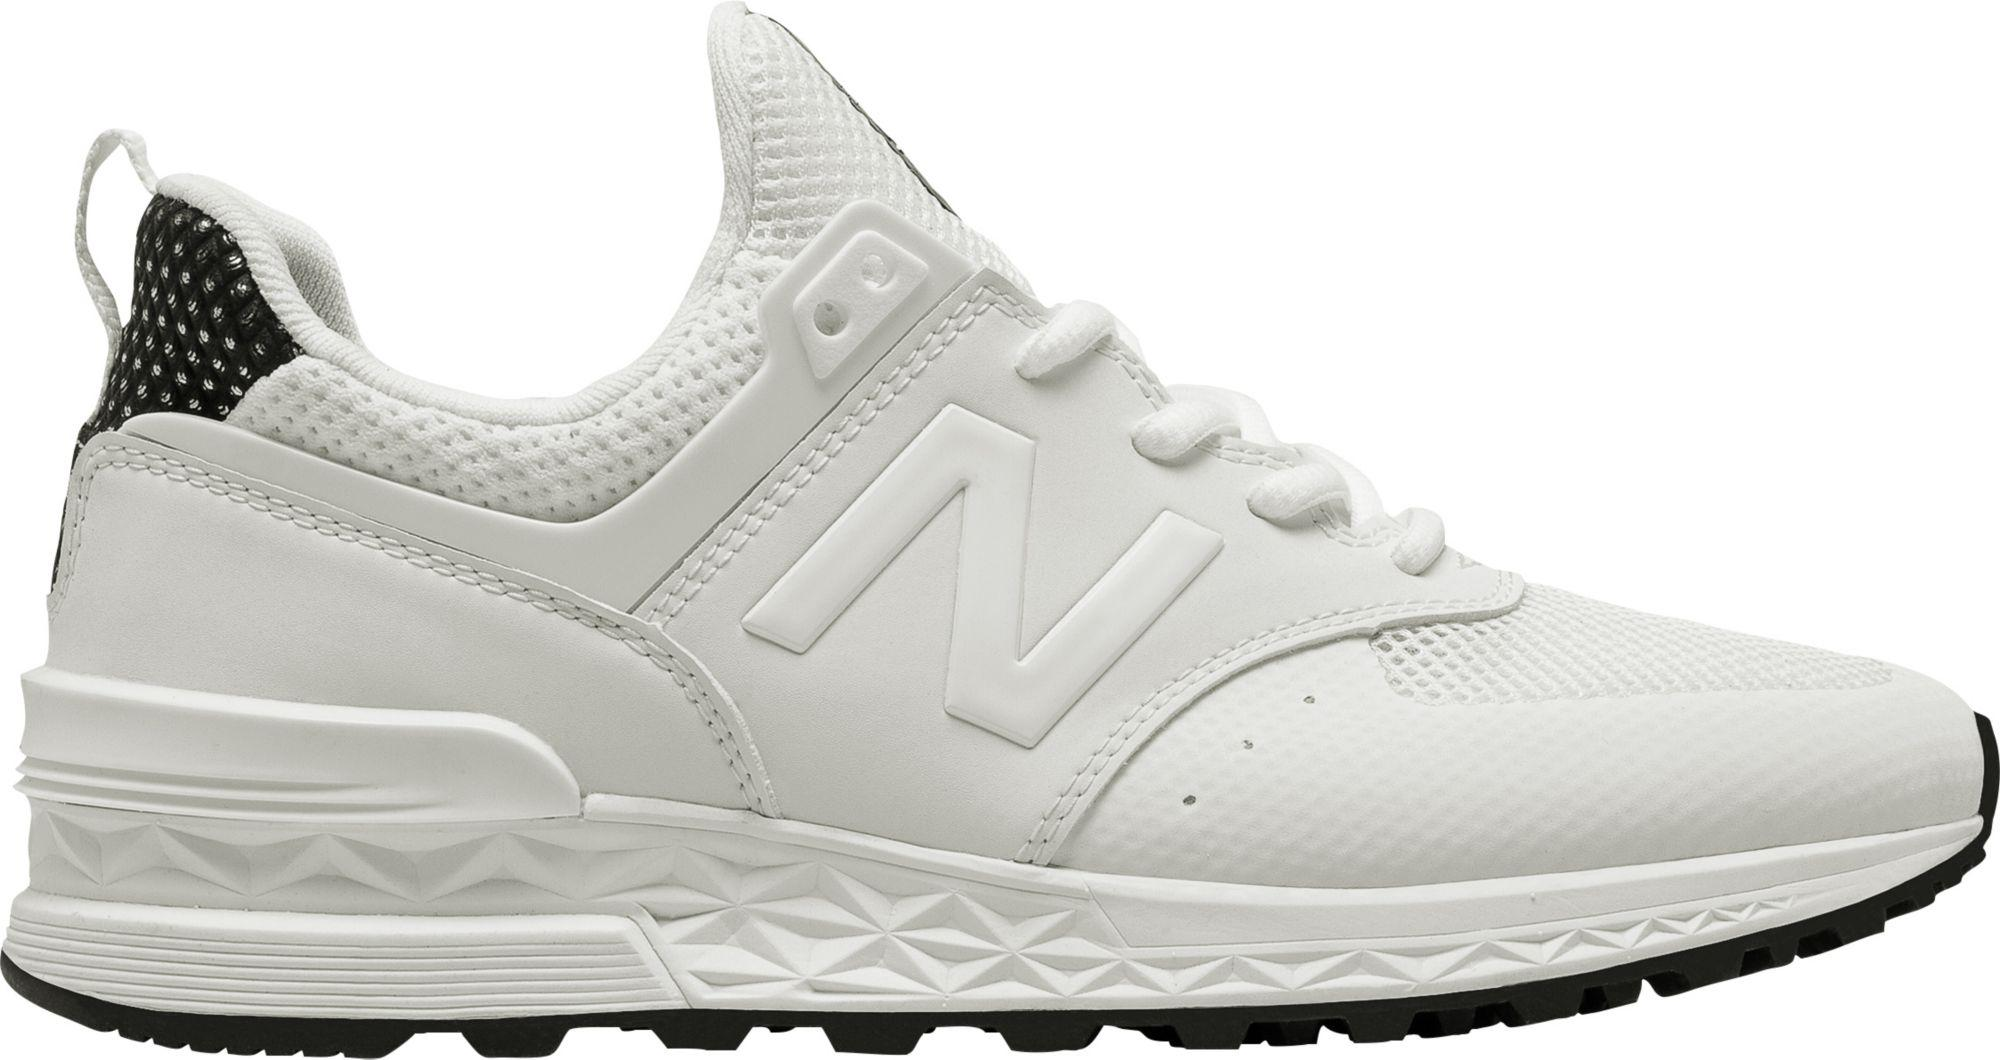 beabfd4c5a Lyst - New Balance 574 Sport Shoes in White for Men